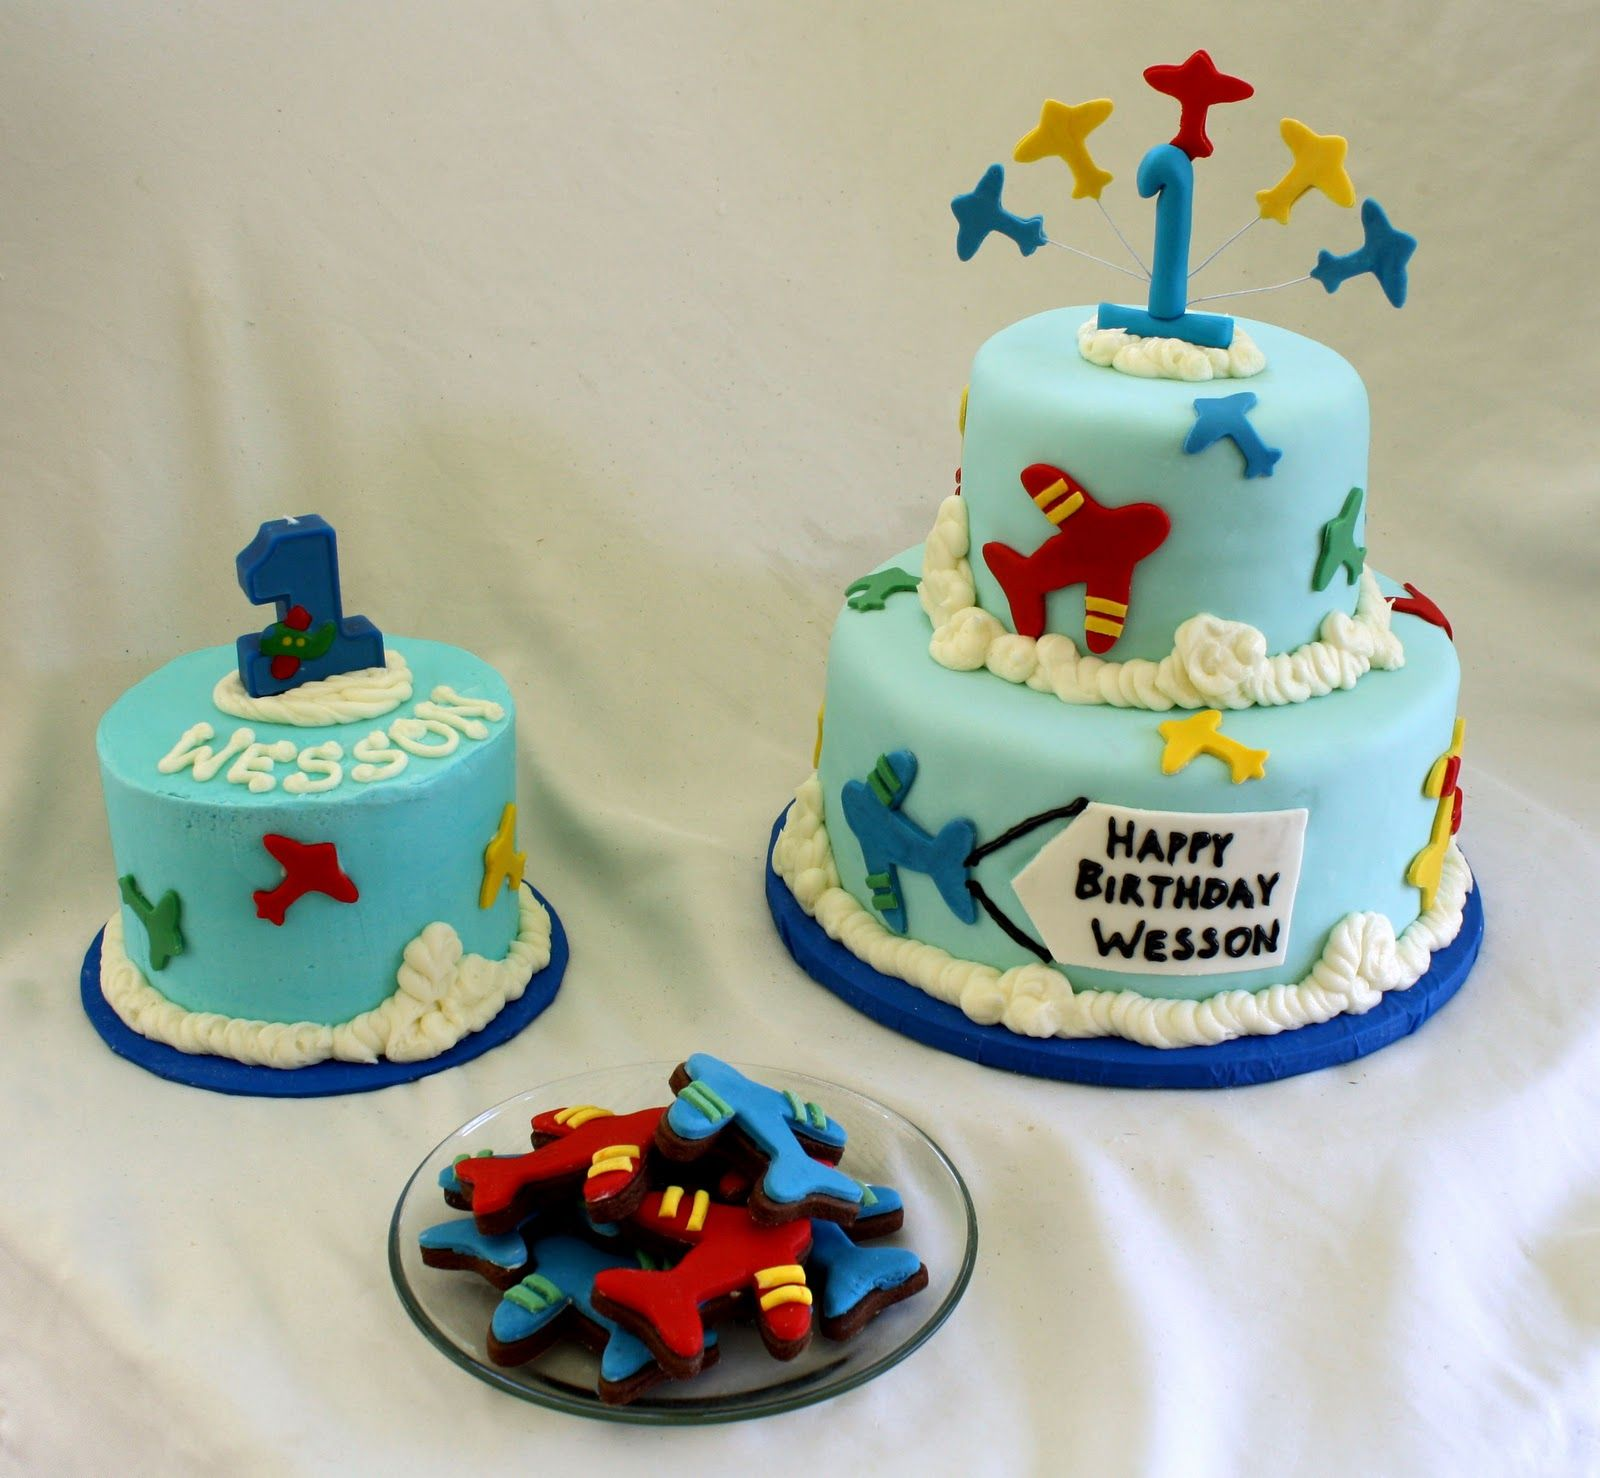 airplane birthday cakes for kids | Rose Bakes... An Airplane Cake, A Smash Cake & Airplane Cookies!